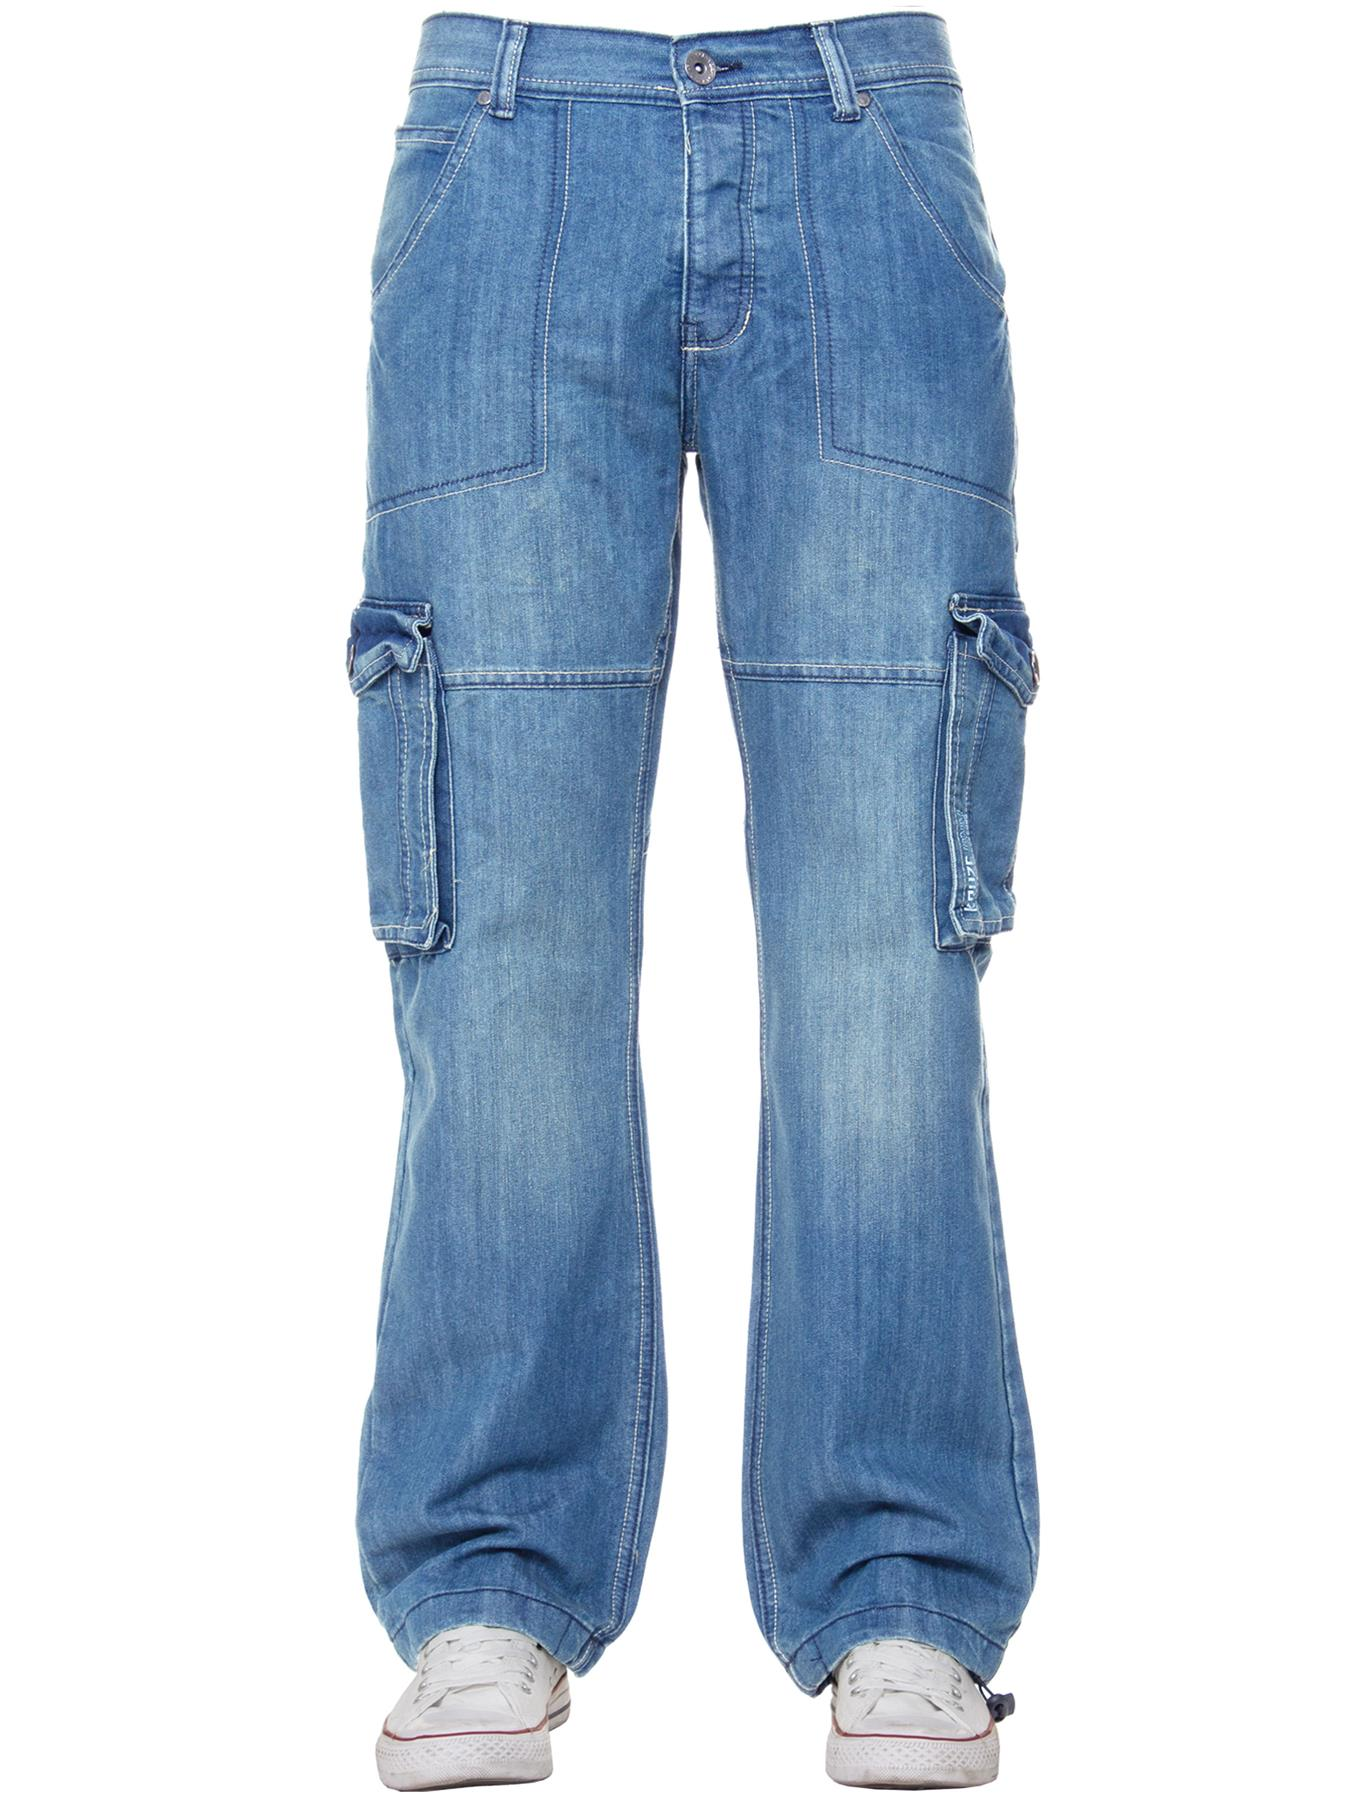 Kruze-Mens-Cargo-Combat-Jeans-Casual-Work-Denim-Pants-Big-Tall-All-Waist-Sizes thumbnail 49